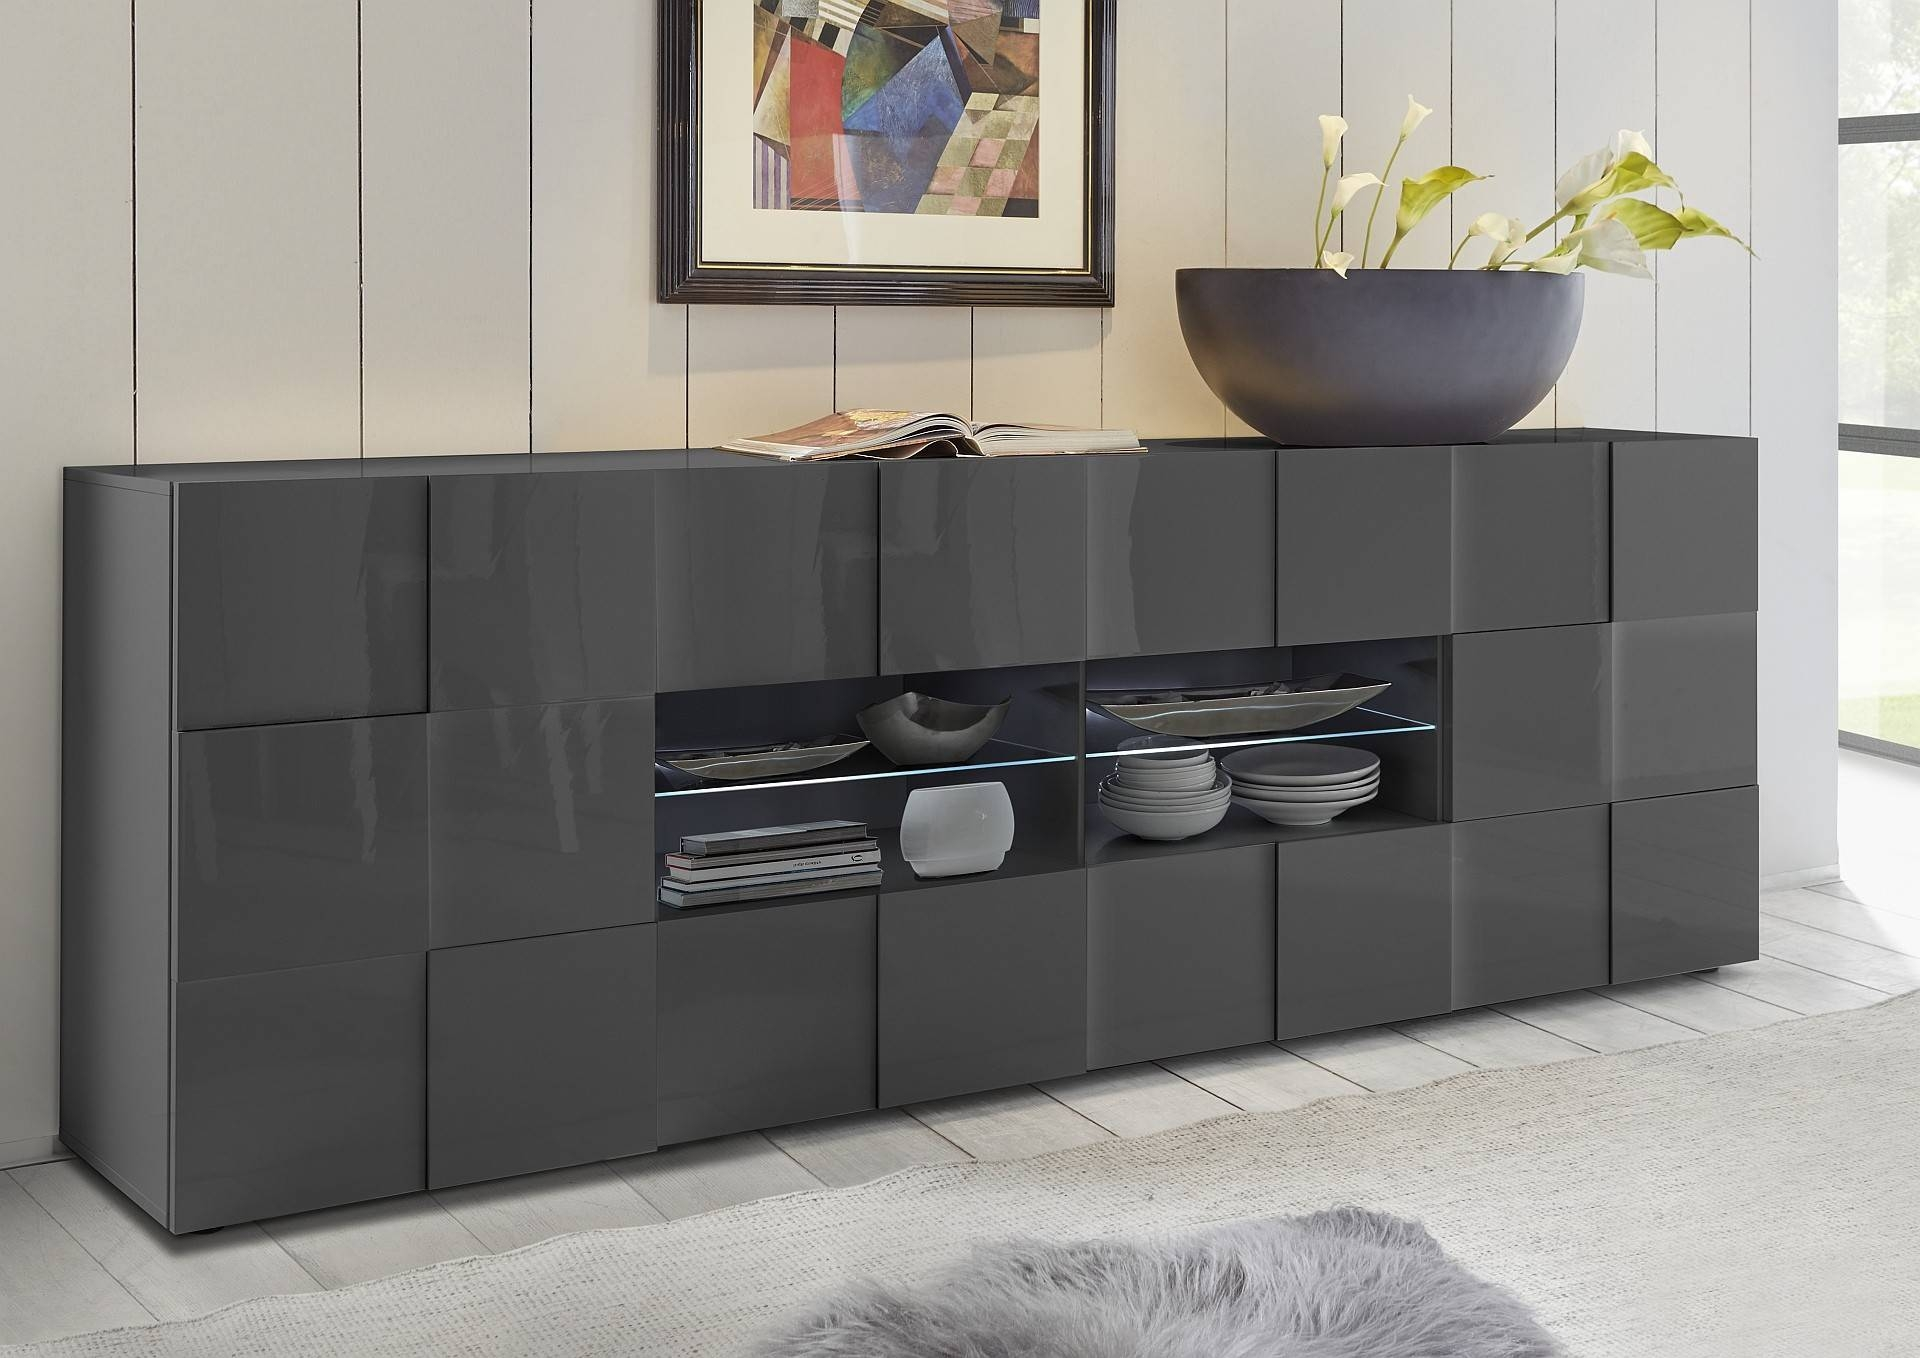 Diana 241Cm - Grey Gloss Sideboard With Led Lights - Sideboards inside Grey Gloss Sideboards (Image 5 of 30)